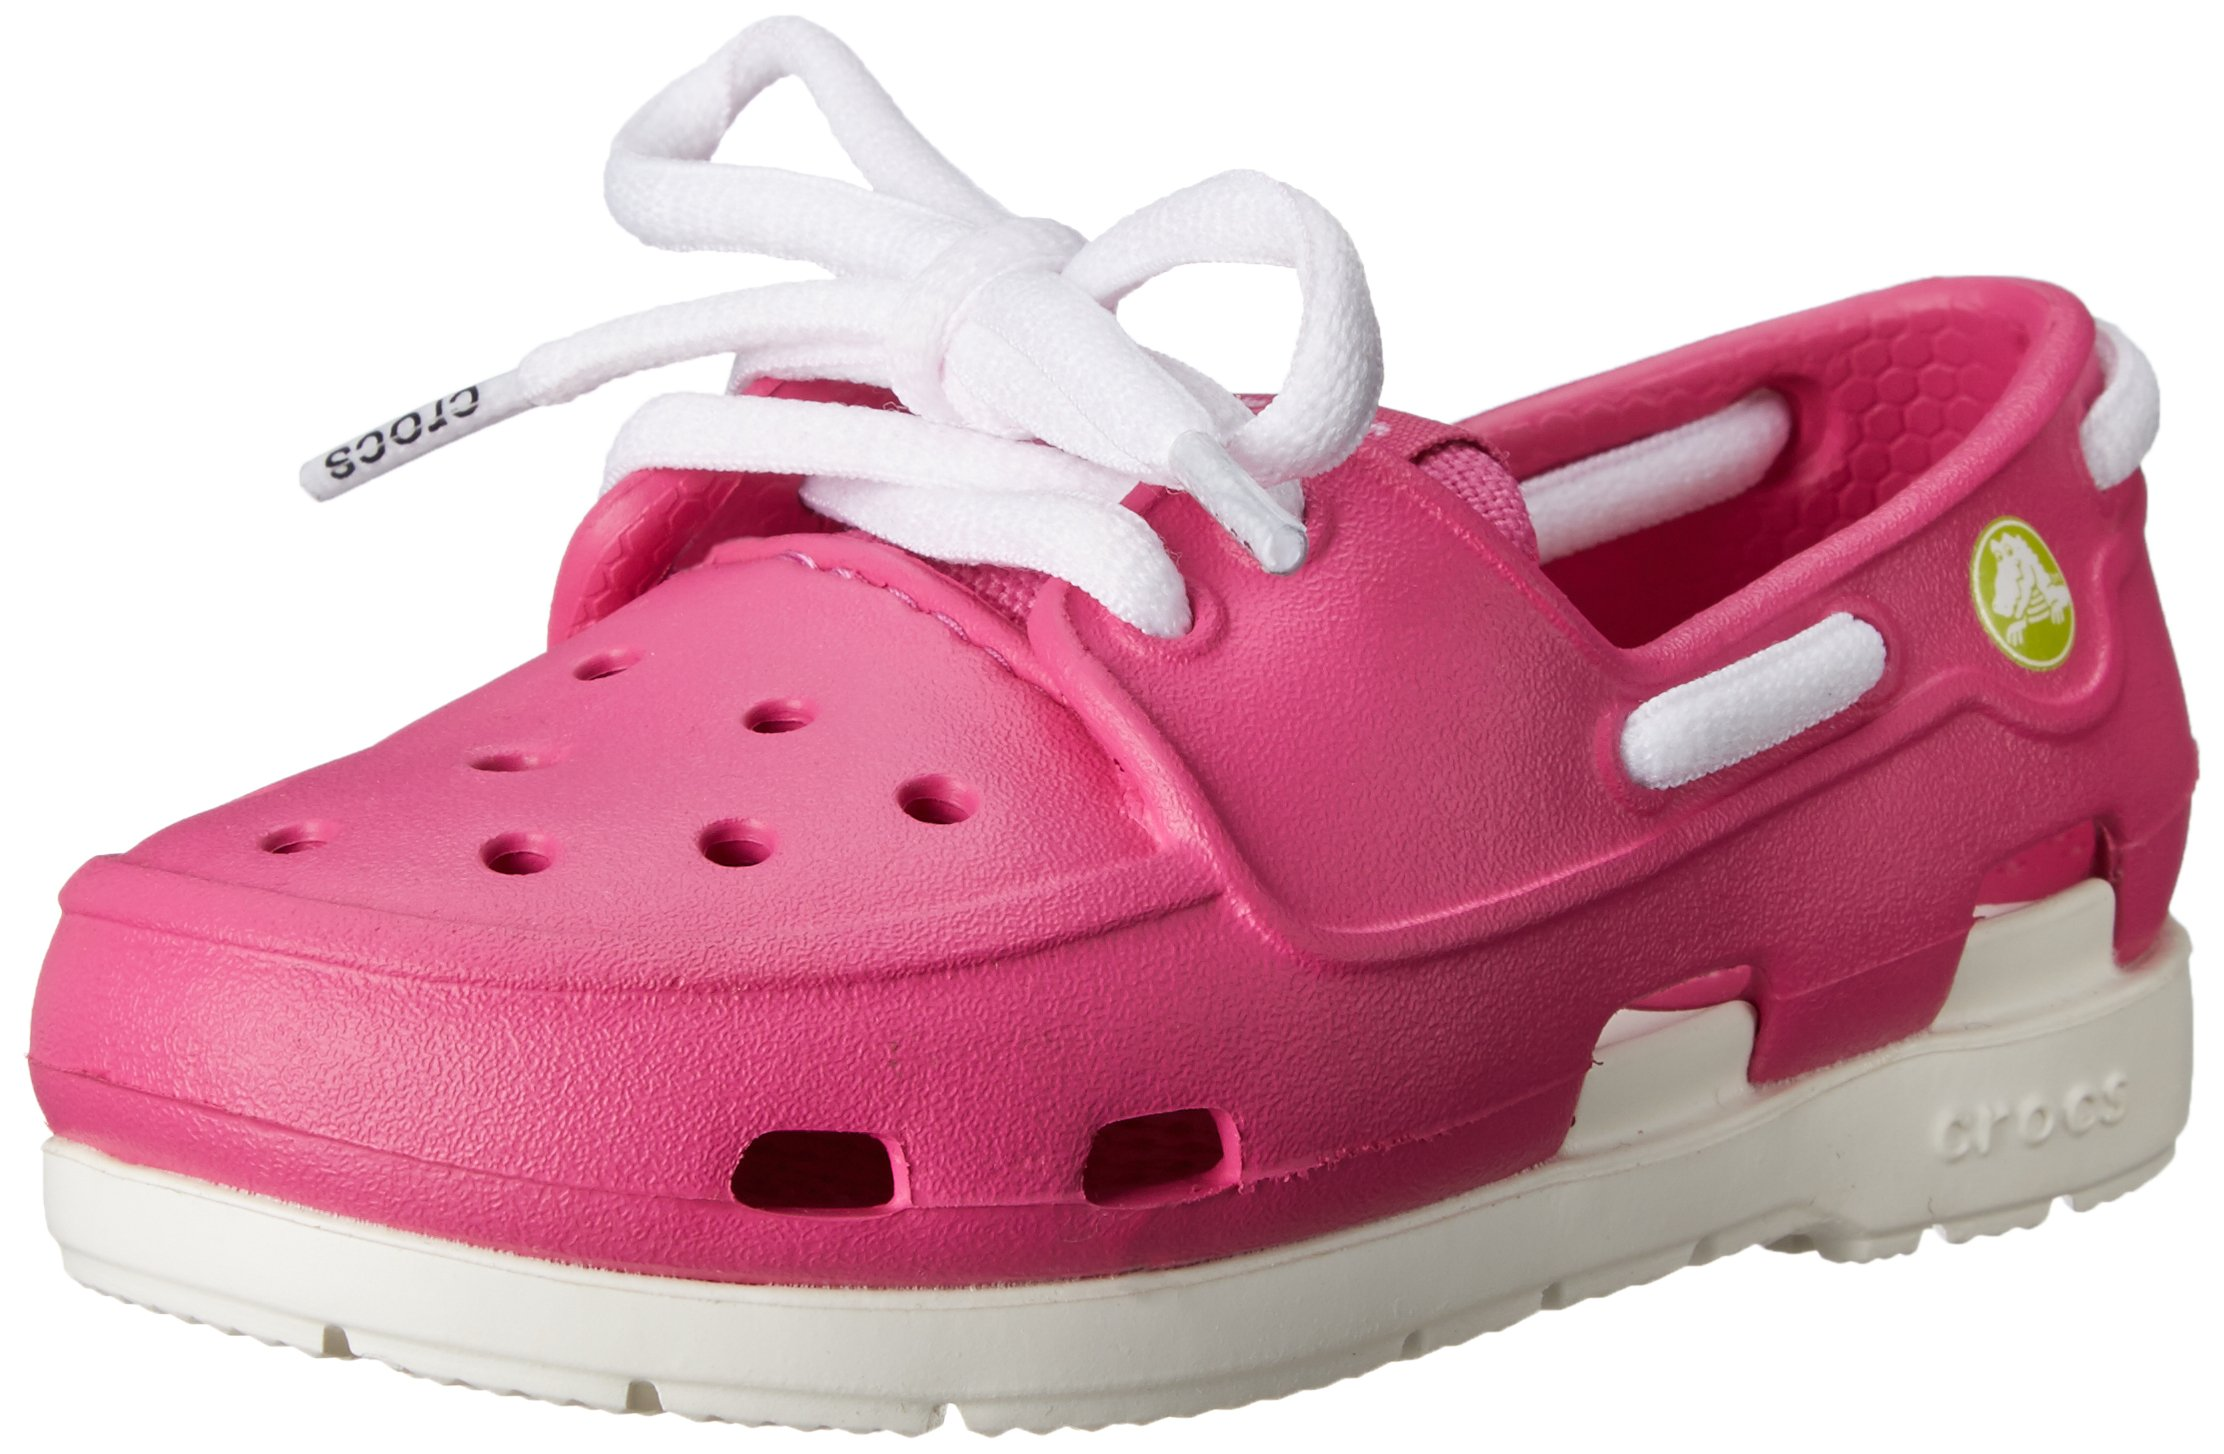 crocs Beach Line Lace PS Boat Shoe (Toddler/Little Kid),Fuchsia/White,7 M US Toddler